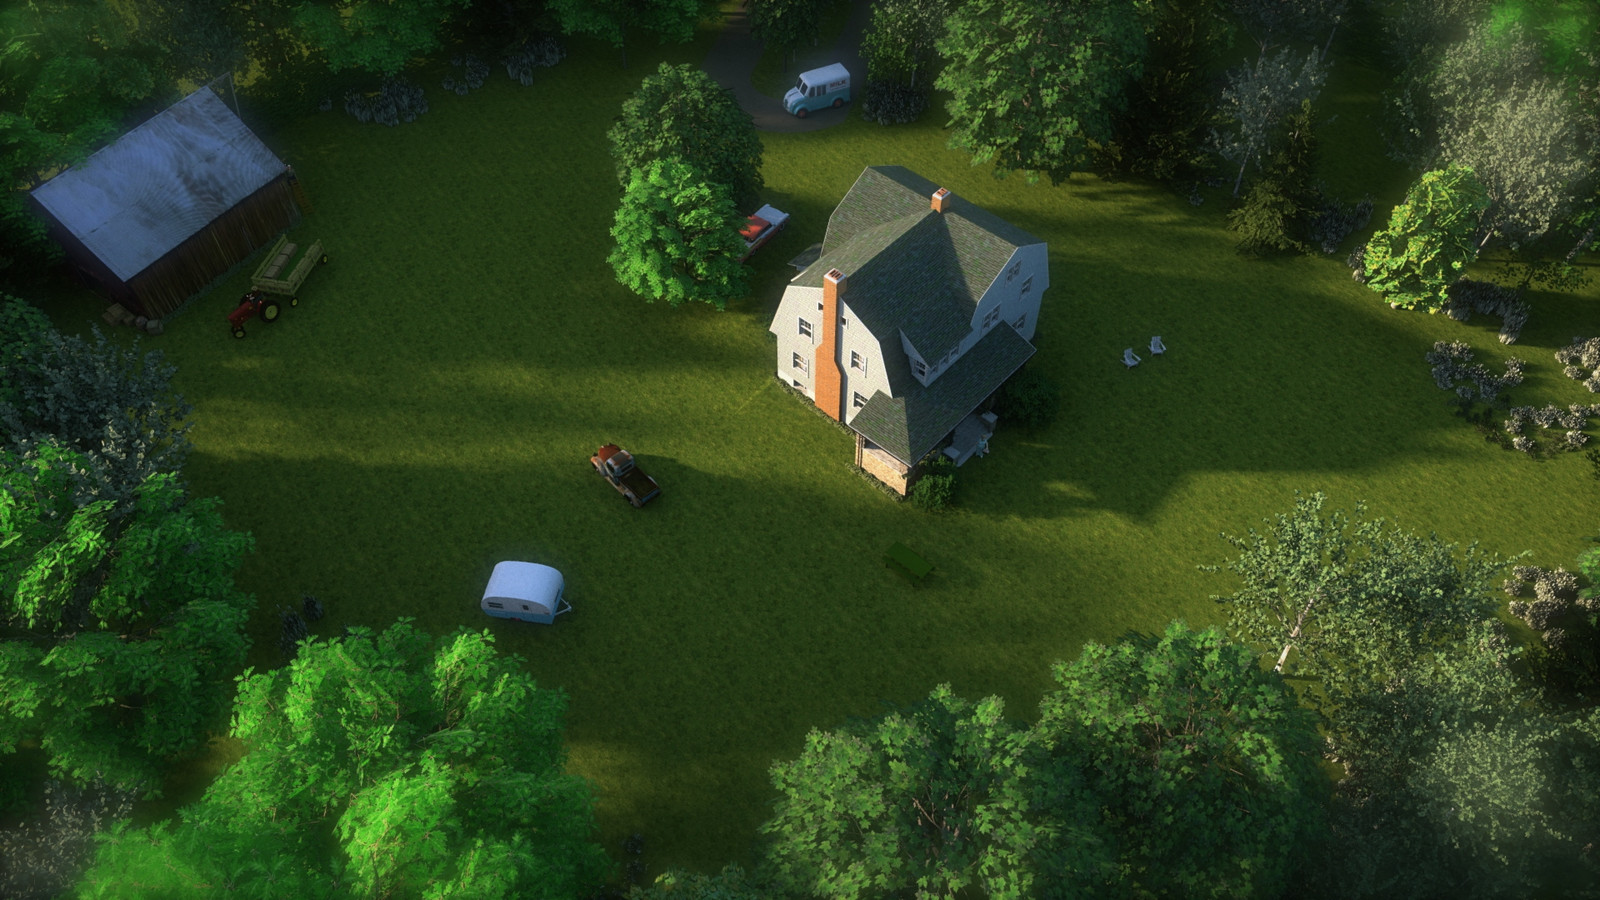 """""""Mason Farm - Heart's Haven"""" Summer Sun Collection   05 Masonfarm HD1080 20 - iP Kodac  """"SketchUp to LayOut"""" The Mason Farm Renders for the launching of the new book """"SketchUp to LayOut"""" http://bit.ly/2j0d0Wh by MasterSketchup."""